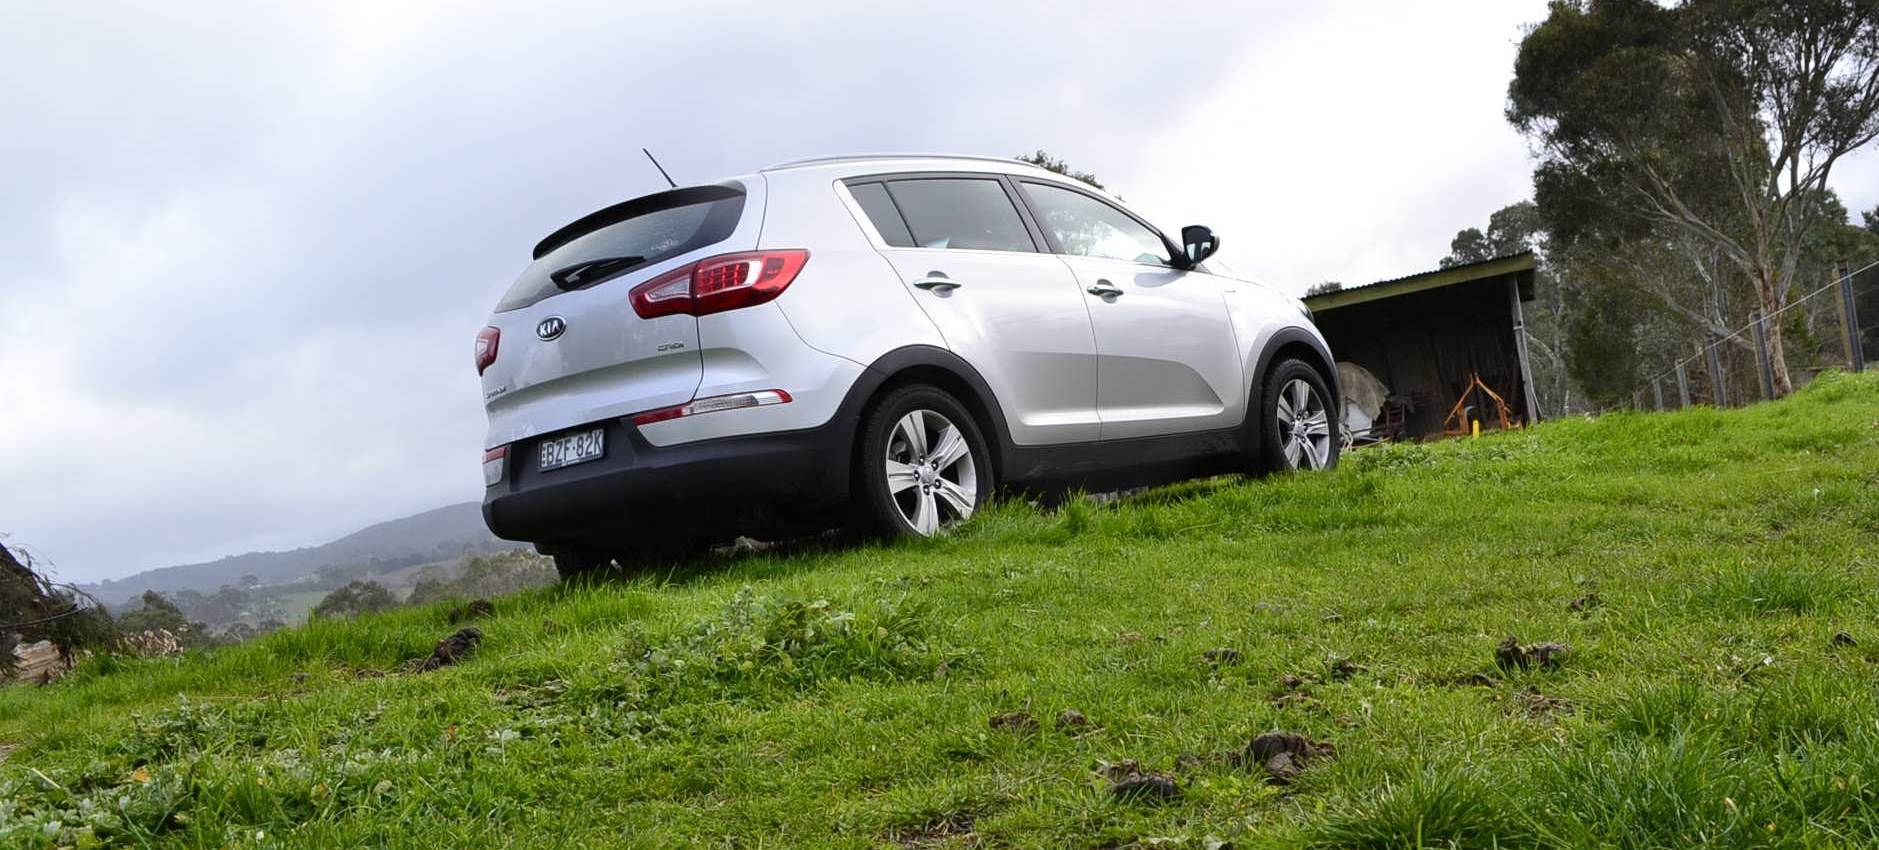 kia sportage review 2012 sli diesel automatic. Black Bedroom Furniture Sets. Home Design Ideas